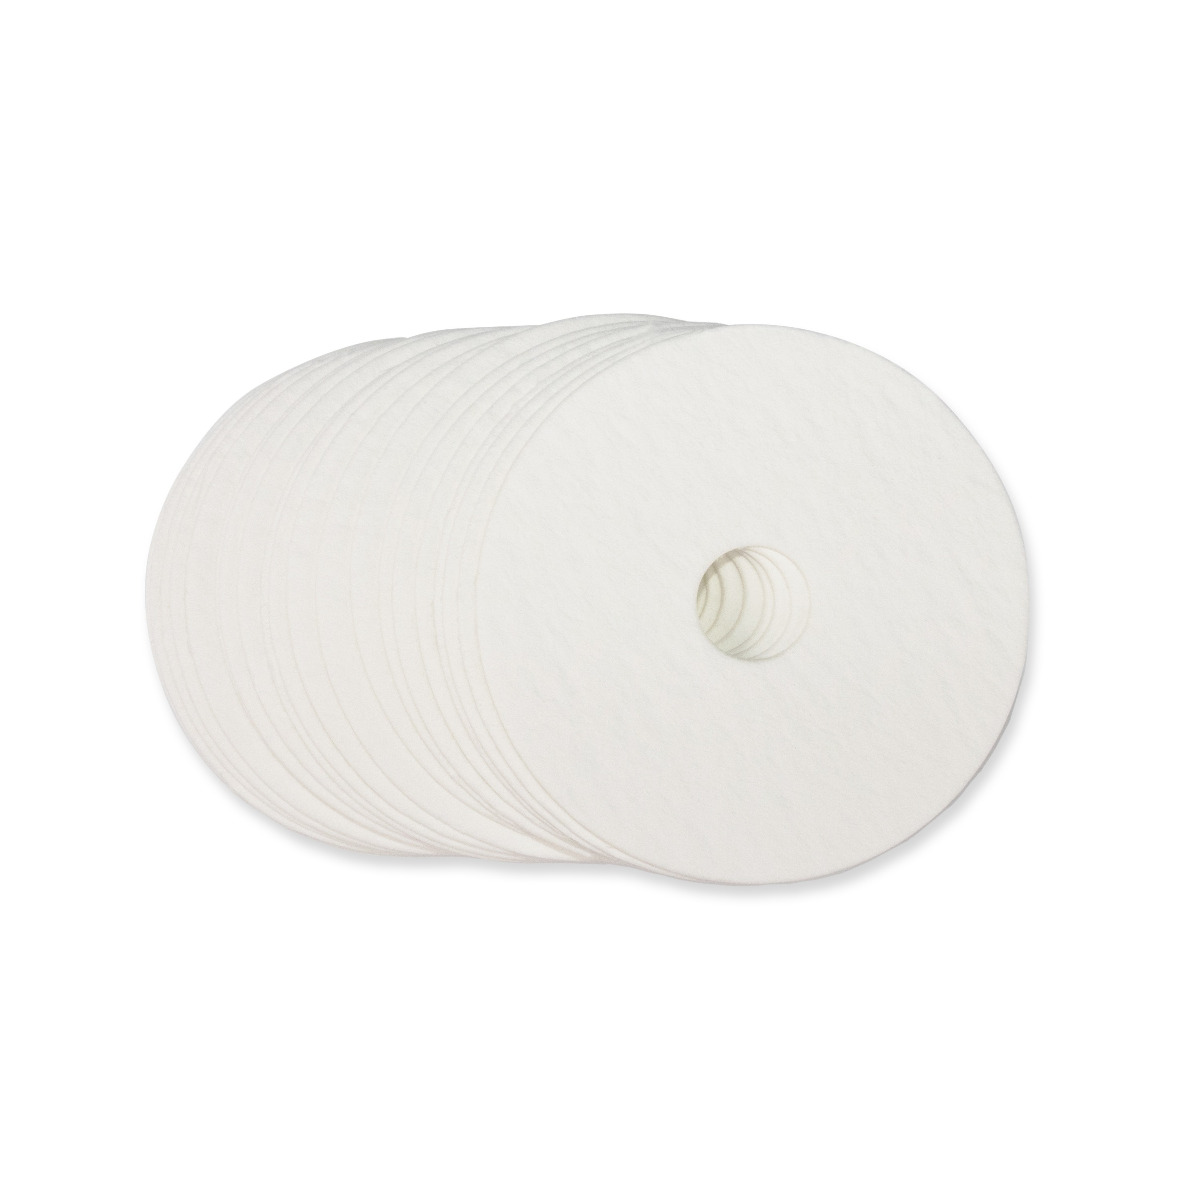 "Non-Asbestos Paper Bases - Round Base With Hole - 3.5"" (OD) x 0.75"" (ID)"